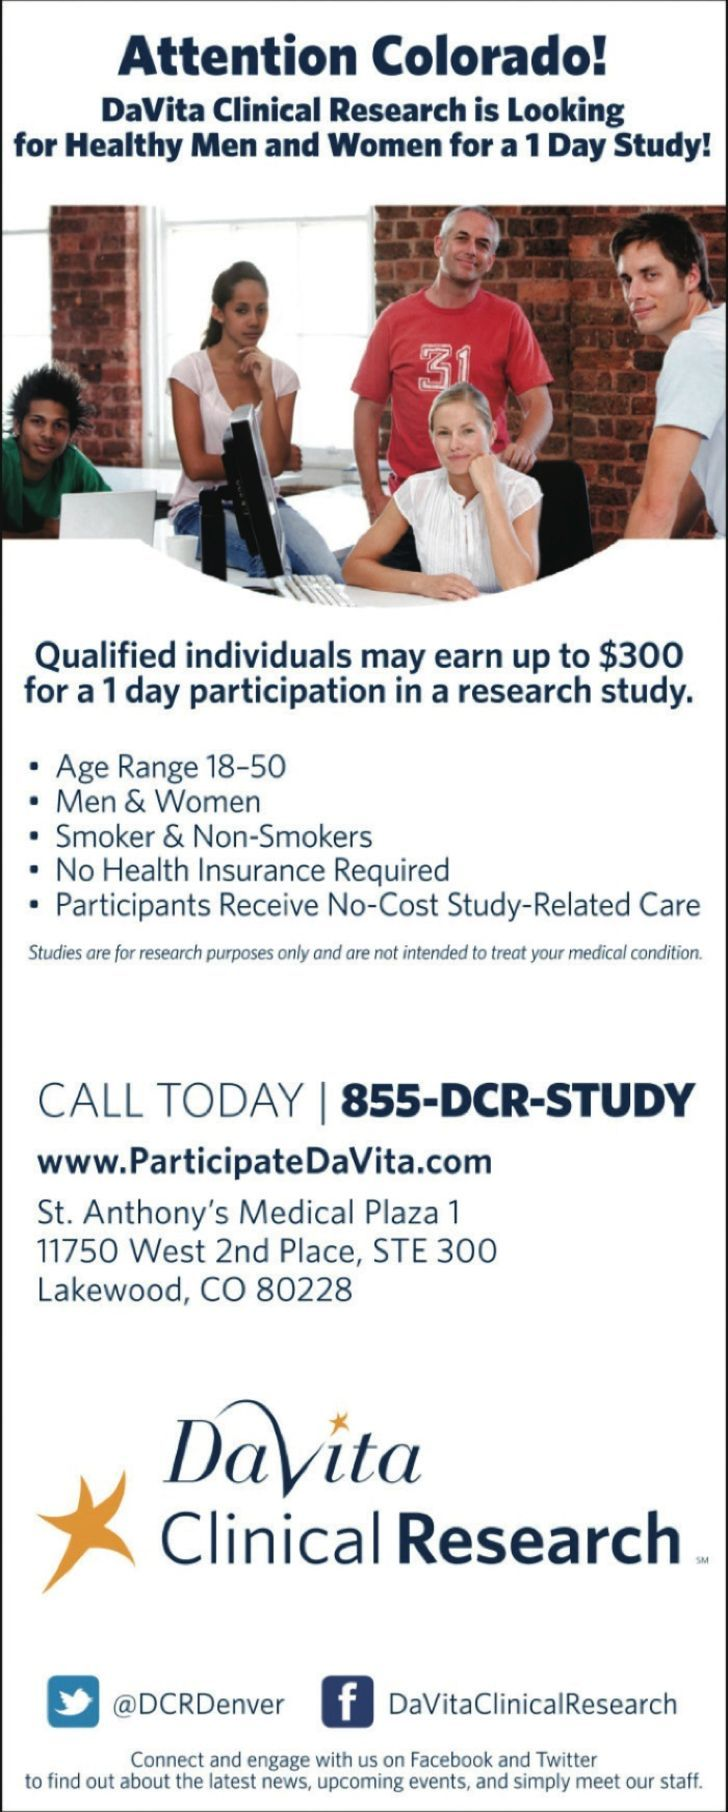 DaVita Clinical Research